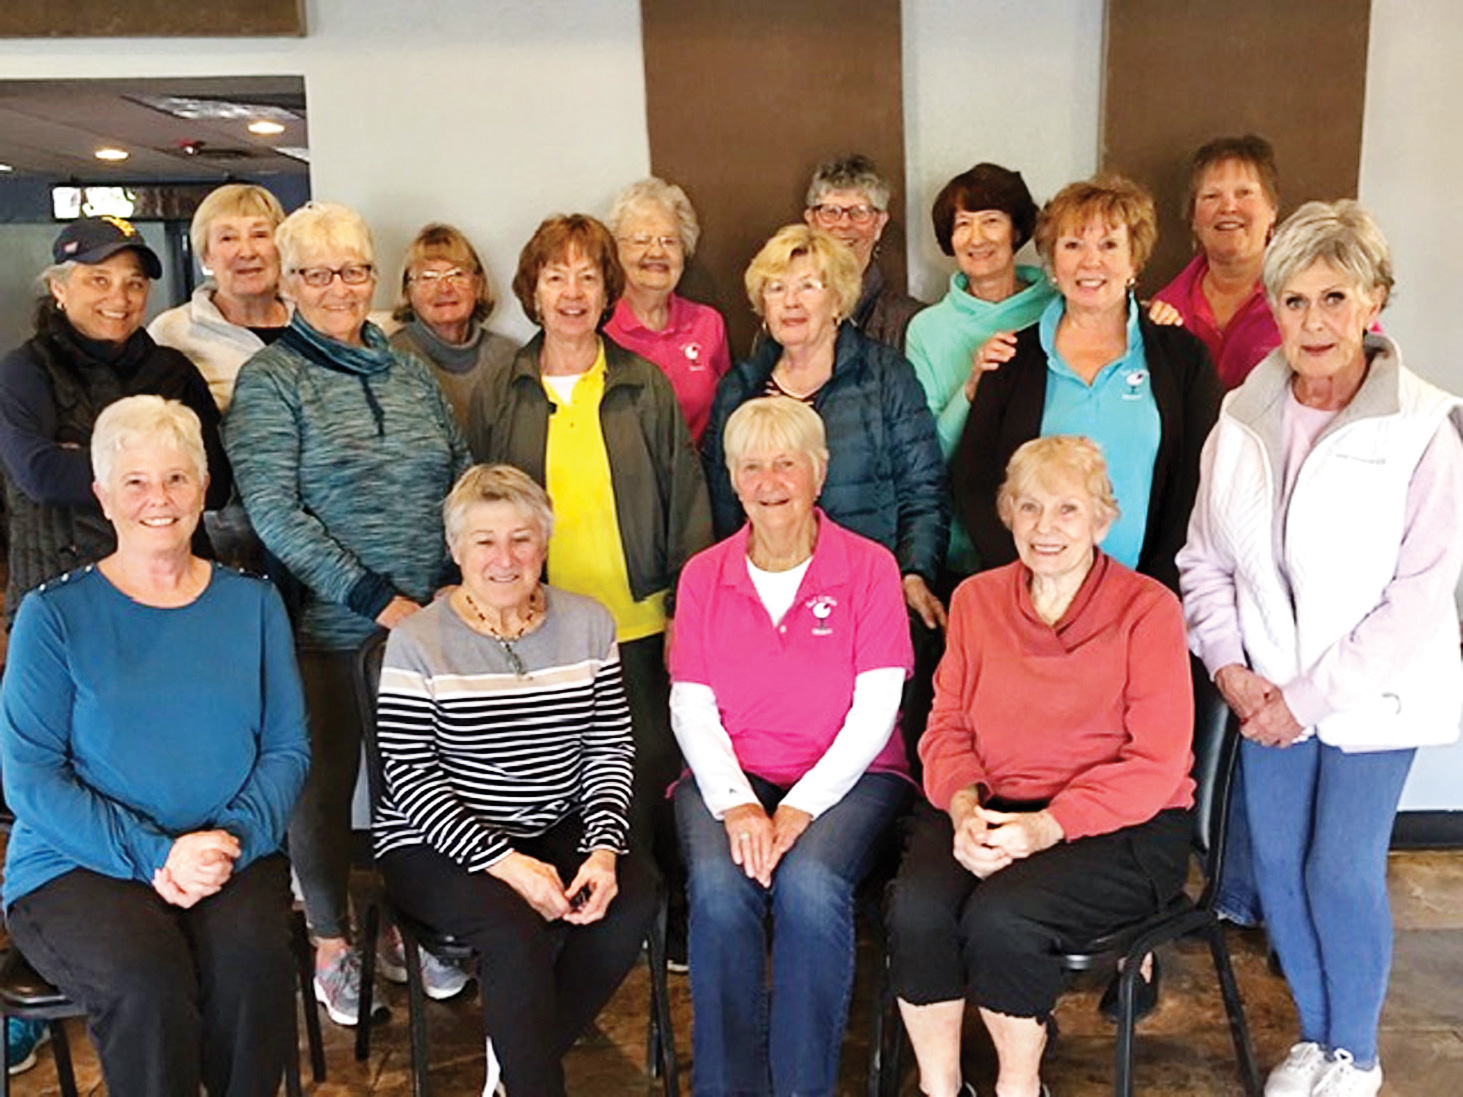 Back row (left to right): Mary Bohren, Jan Sykes, Liz Tollefsen, Jackie Aagaard, Rose Gallagher, Rosie Raisanin; second row (left to right): Ann Hegney, Lavonne Mensink, Bev Jur, Fran Kleinsteuber, Sue Parmenter, Sheila Barton; front row (left to right): Susan Geis, Ardyce Gibson, Irene Anderson, Lillian Look